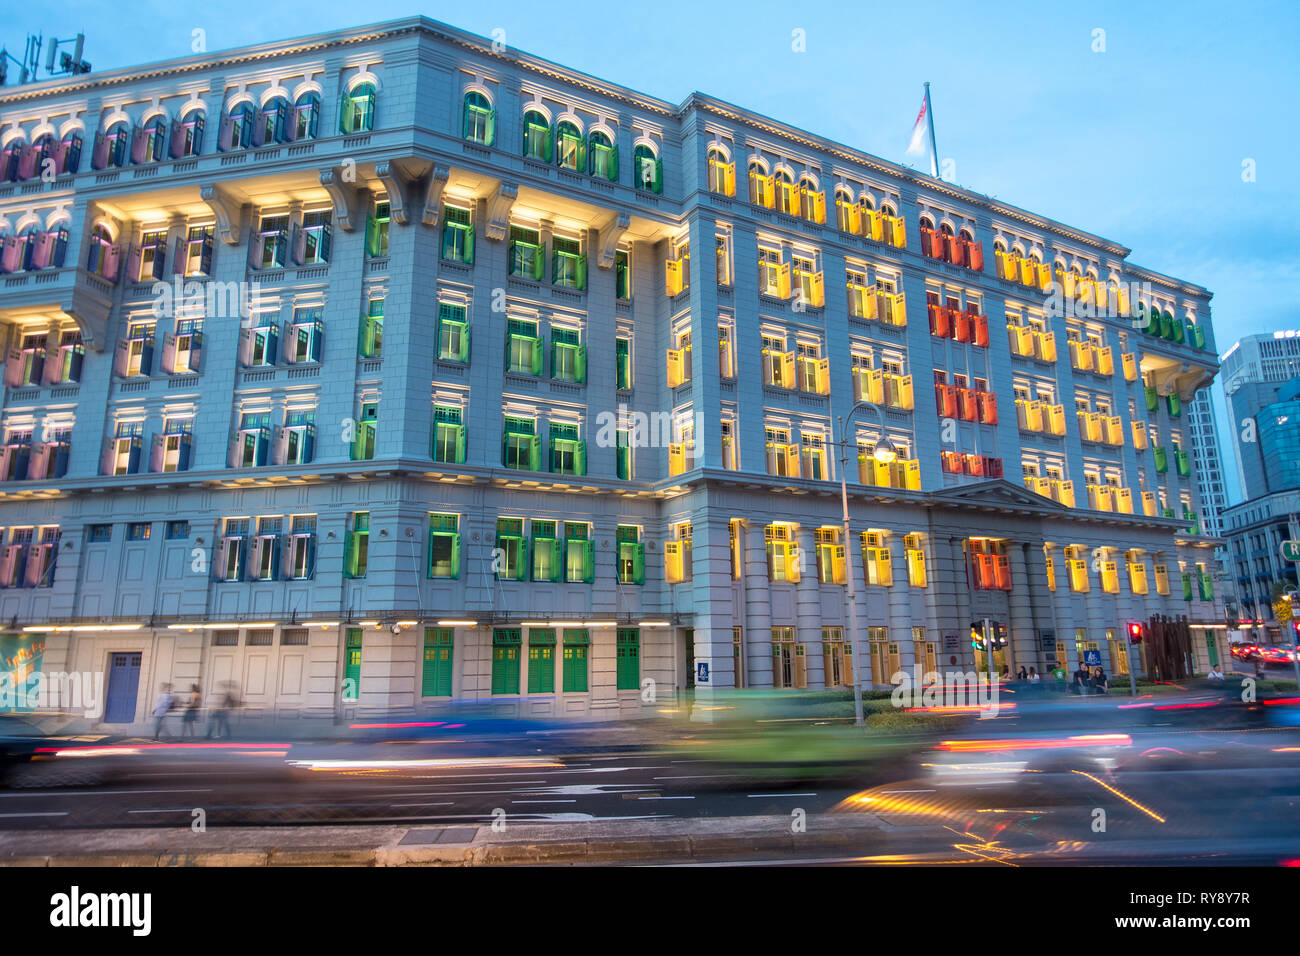 MICA Building With Colorful Windows, and Long Exposure Car Traffic, Singapore Stock Photo